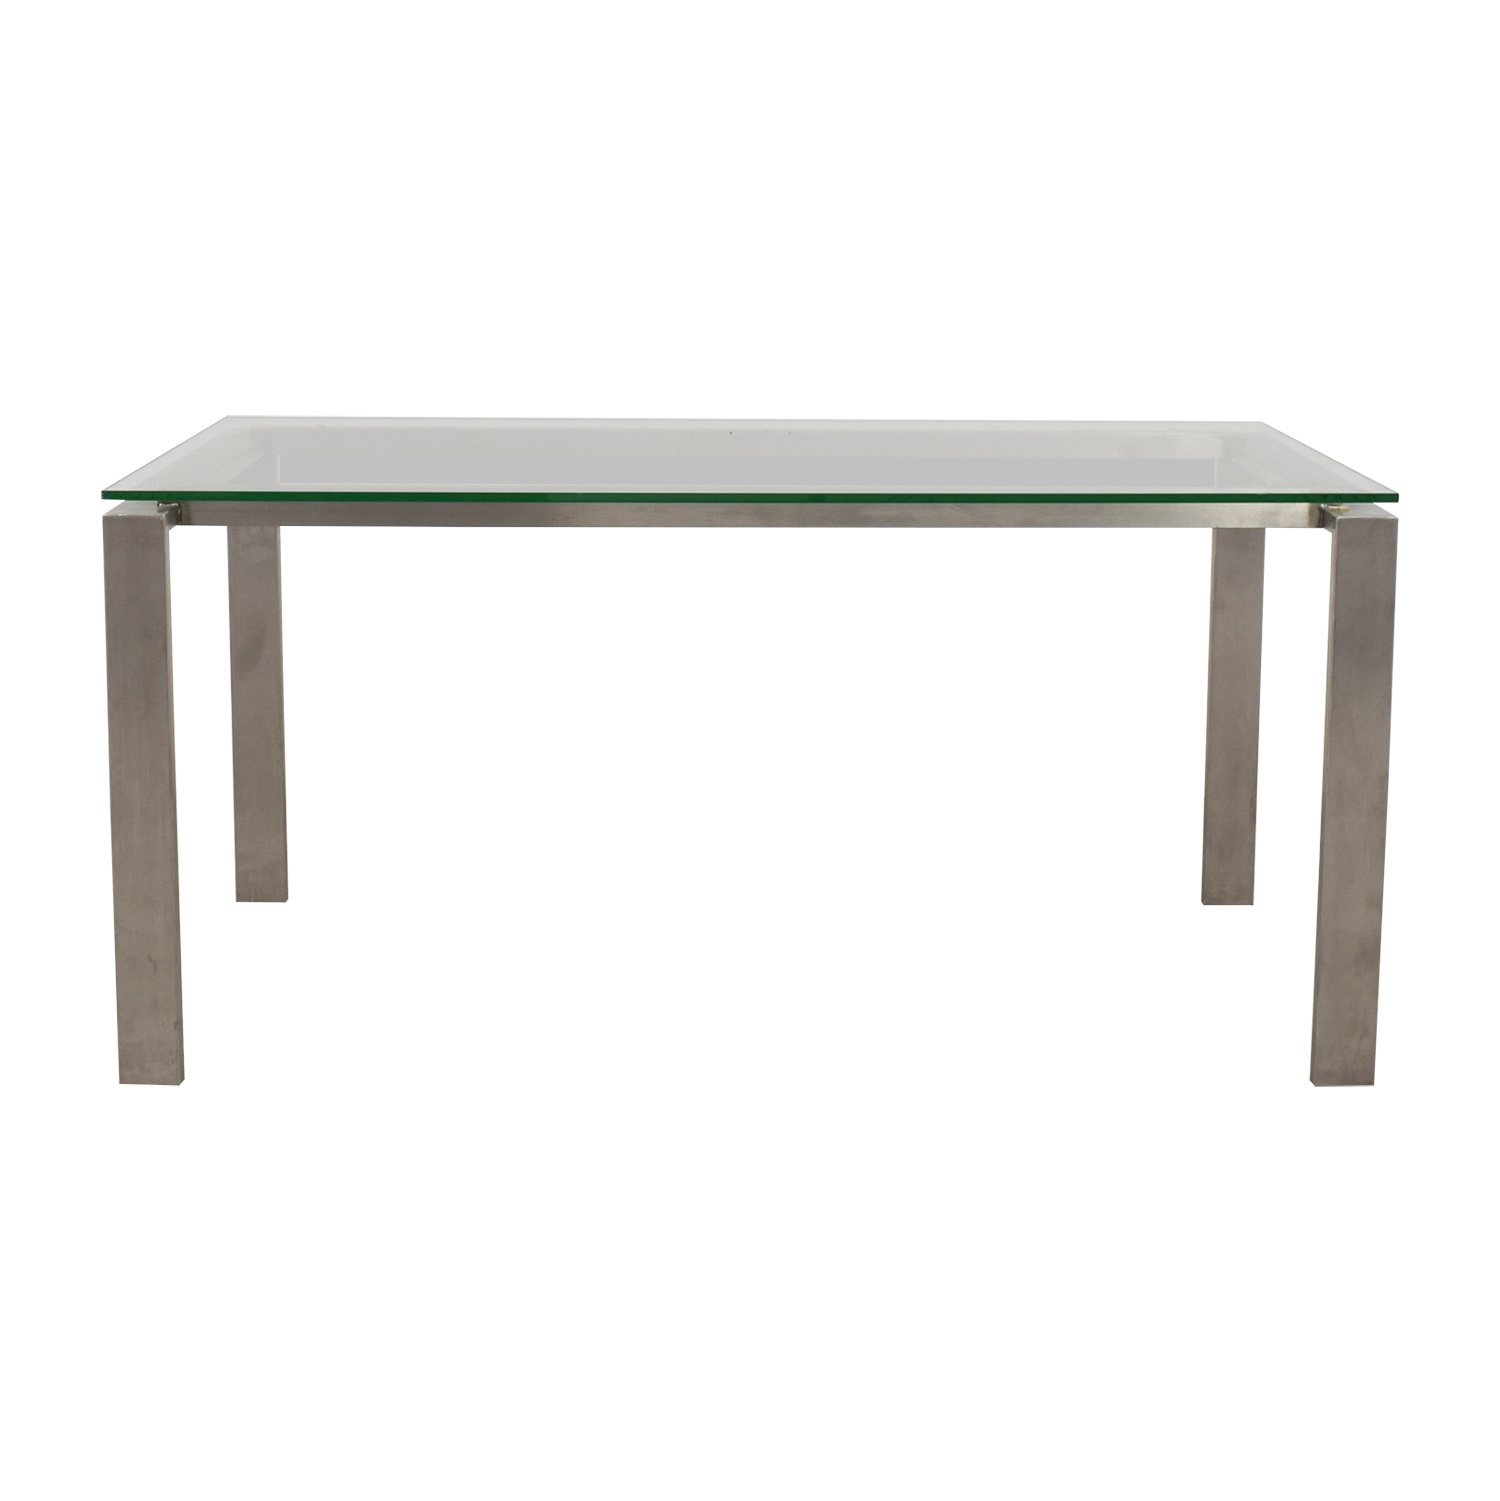 Room & Board Room & Board Rand Stainless Steel and Glass Dining Table for sale